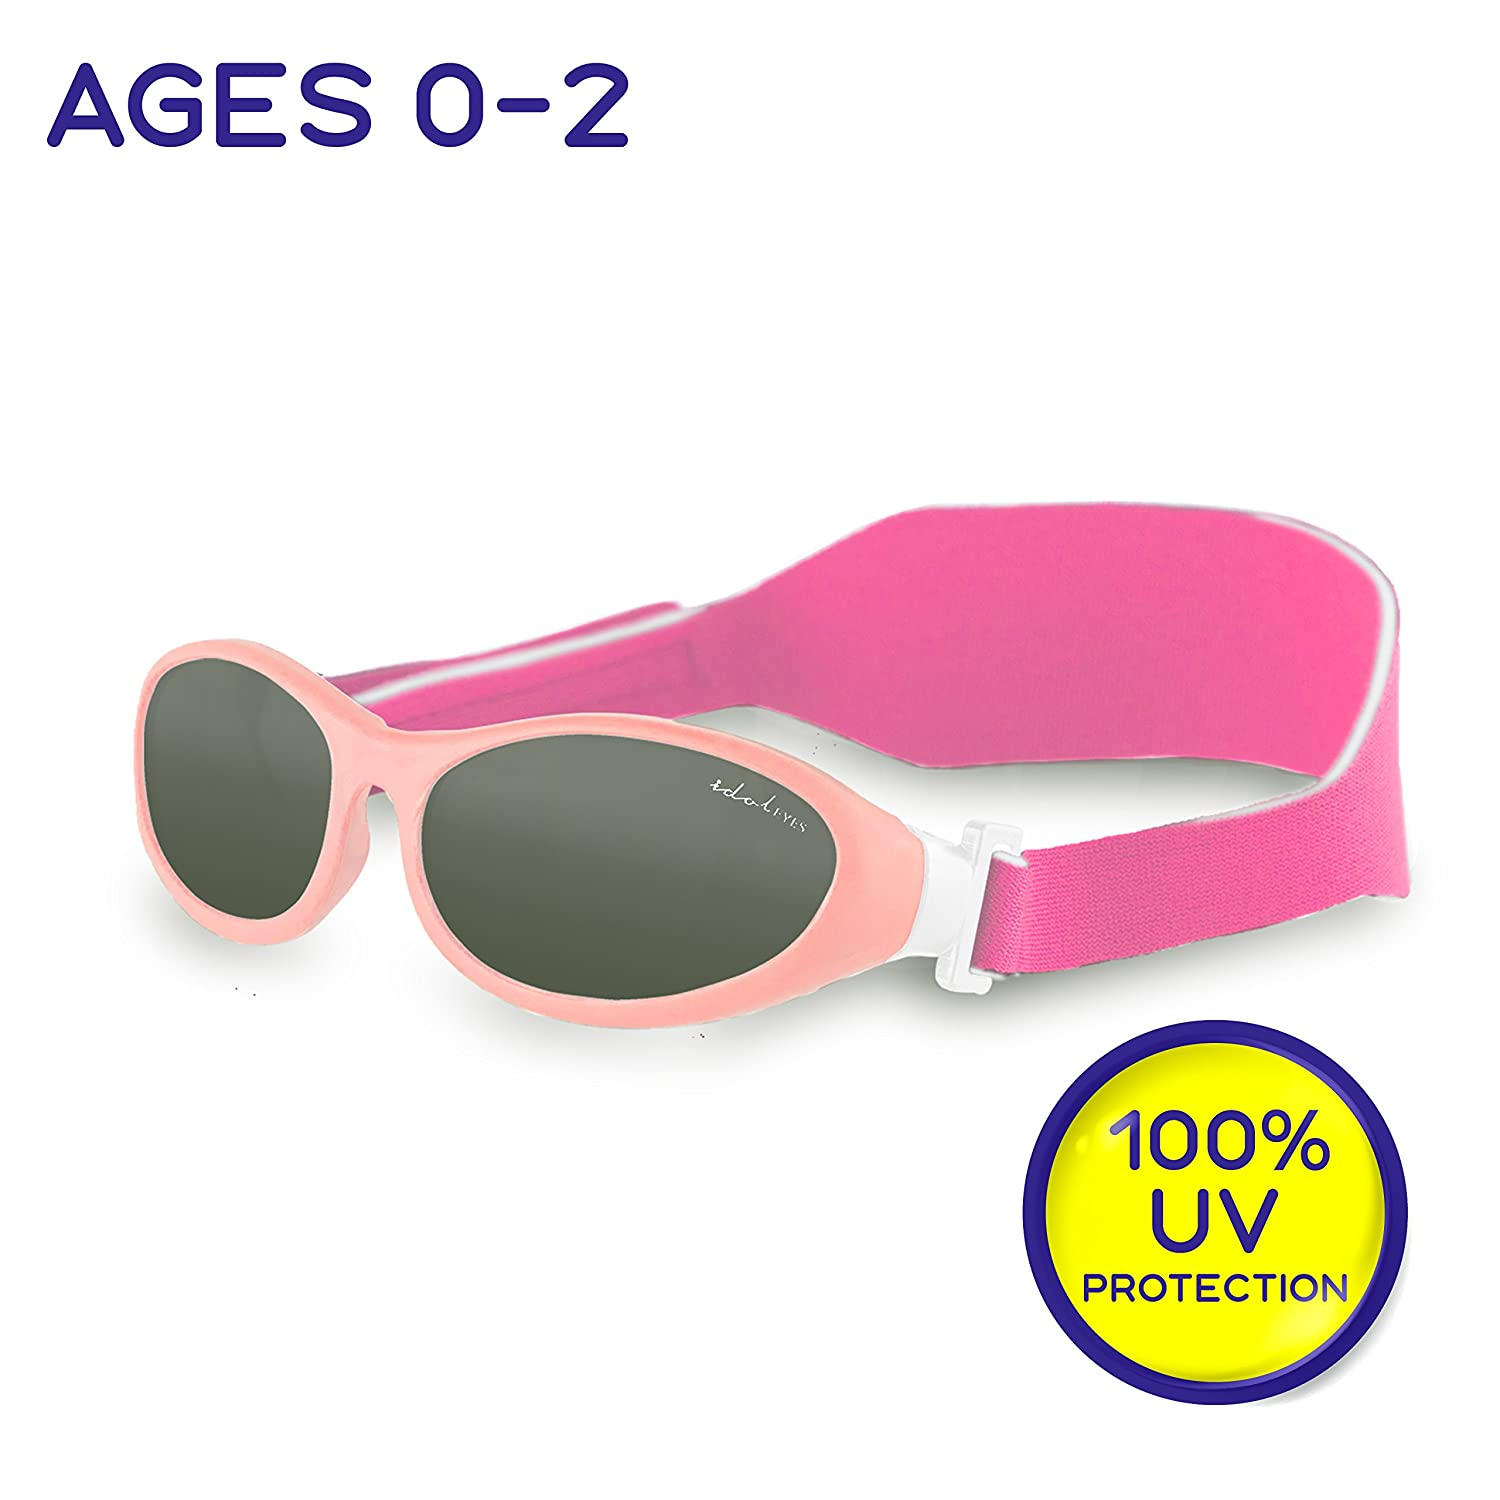 "ddf09d52a2 Amazon.com  Idol Eyes Kids Sunglasses for Kids – ""Baby Wrapz"" Baby  Sunglasses with Strap for Ages 0-2 with 100% UV Protection + Adjustable Baby  Sunglasses ..."